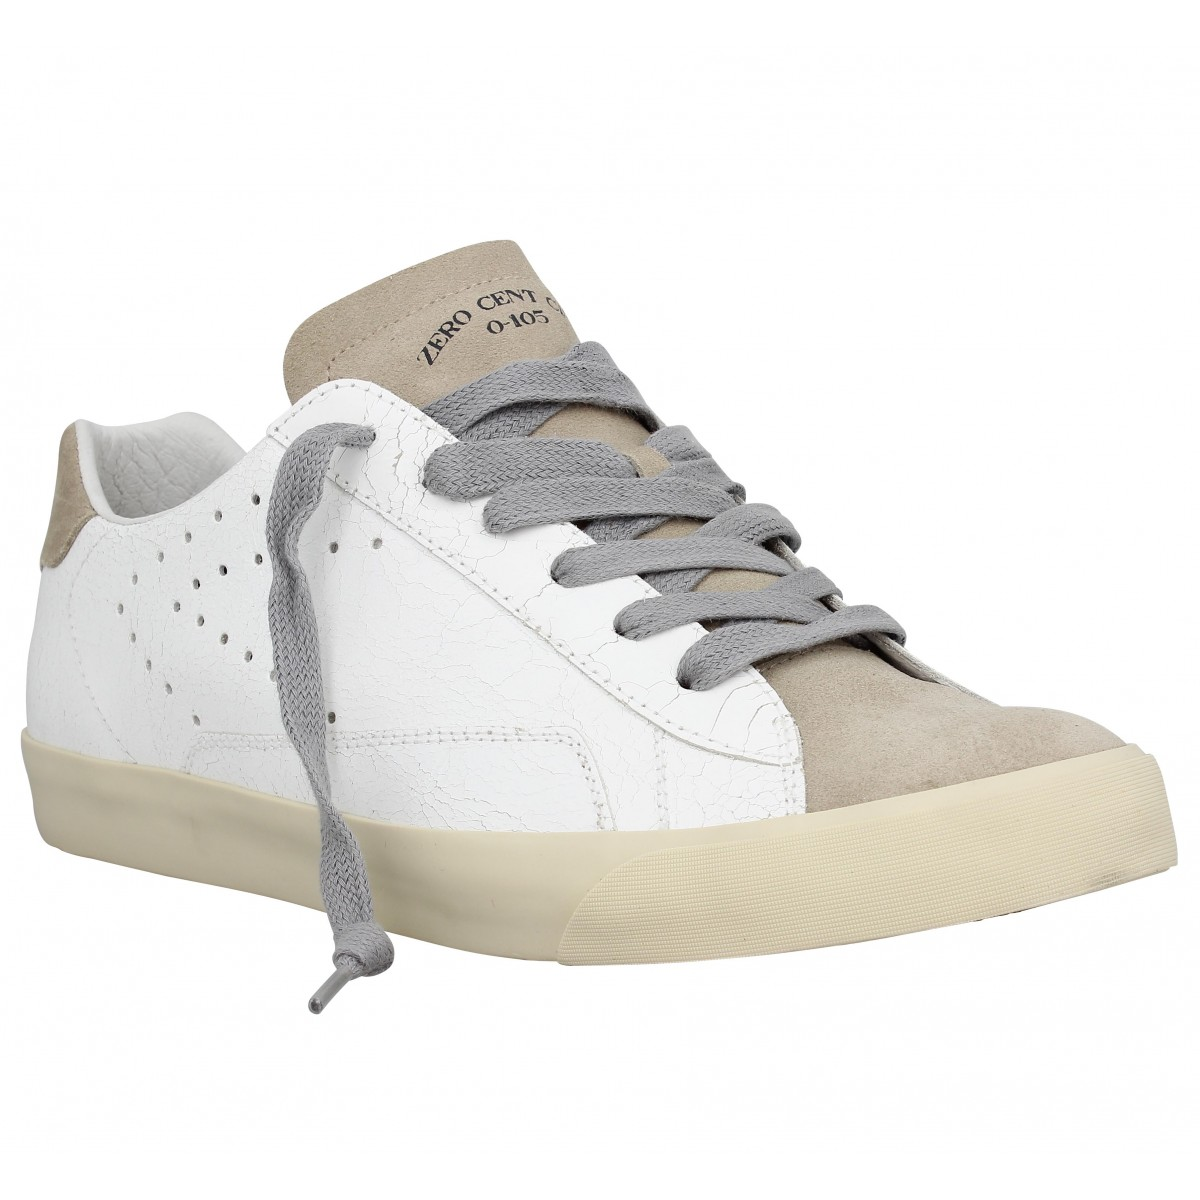 Baskets 0-105 Stan Clay cuir Homme Blanc Taupe